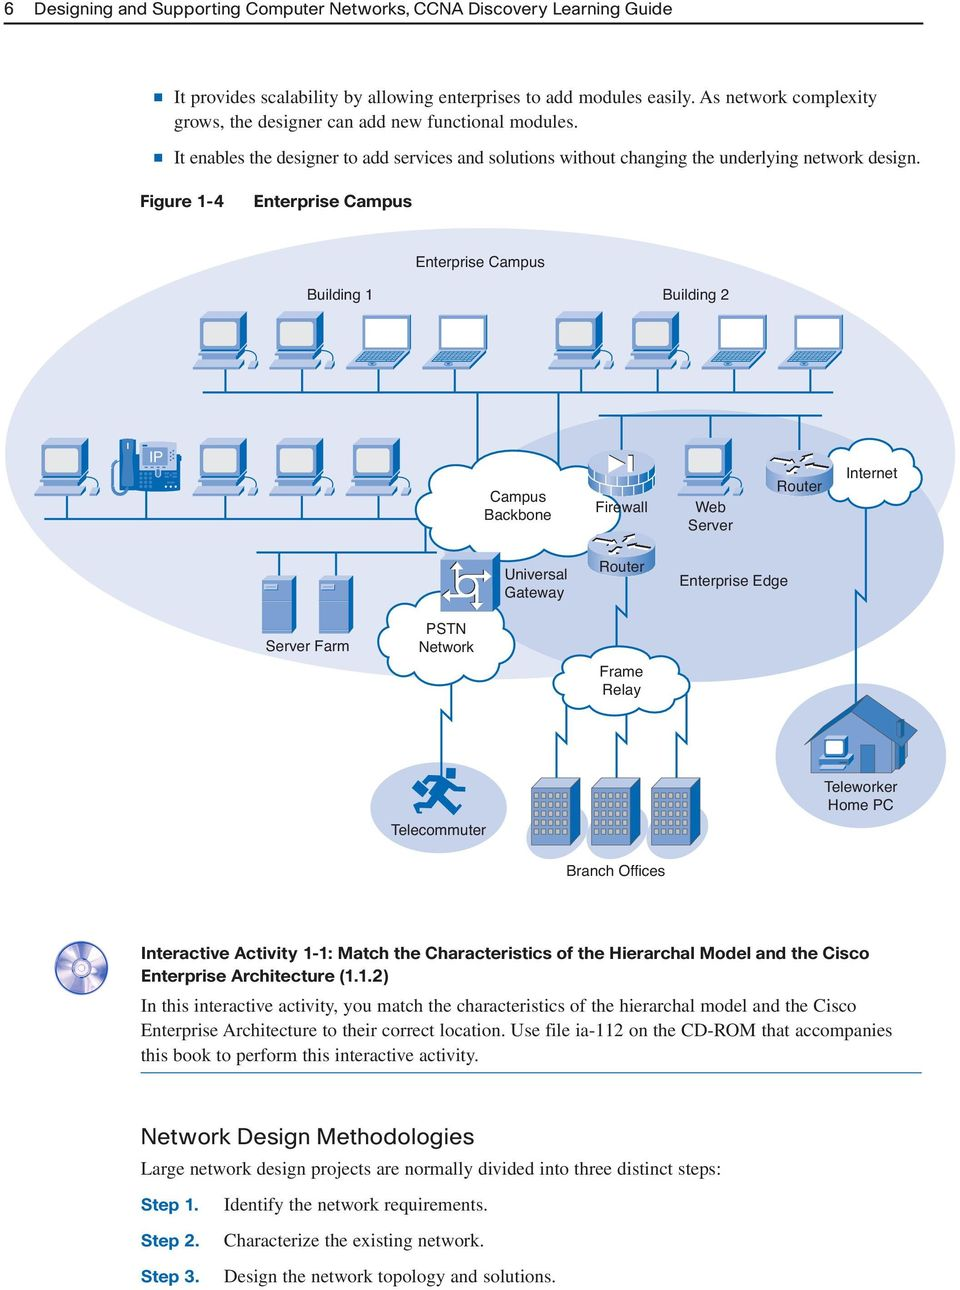 Figure 1-4 Enterprise Campus Enterprise Campus Building 1 Building 2 IP Campus Backbone Firewall Web Server Router Internet Universal Gateway Router Enterprise Edge Server Farm PSTN Network Frame